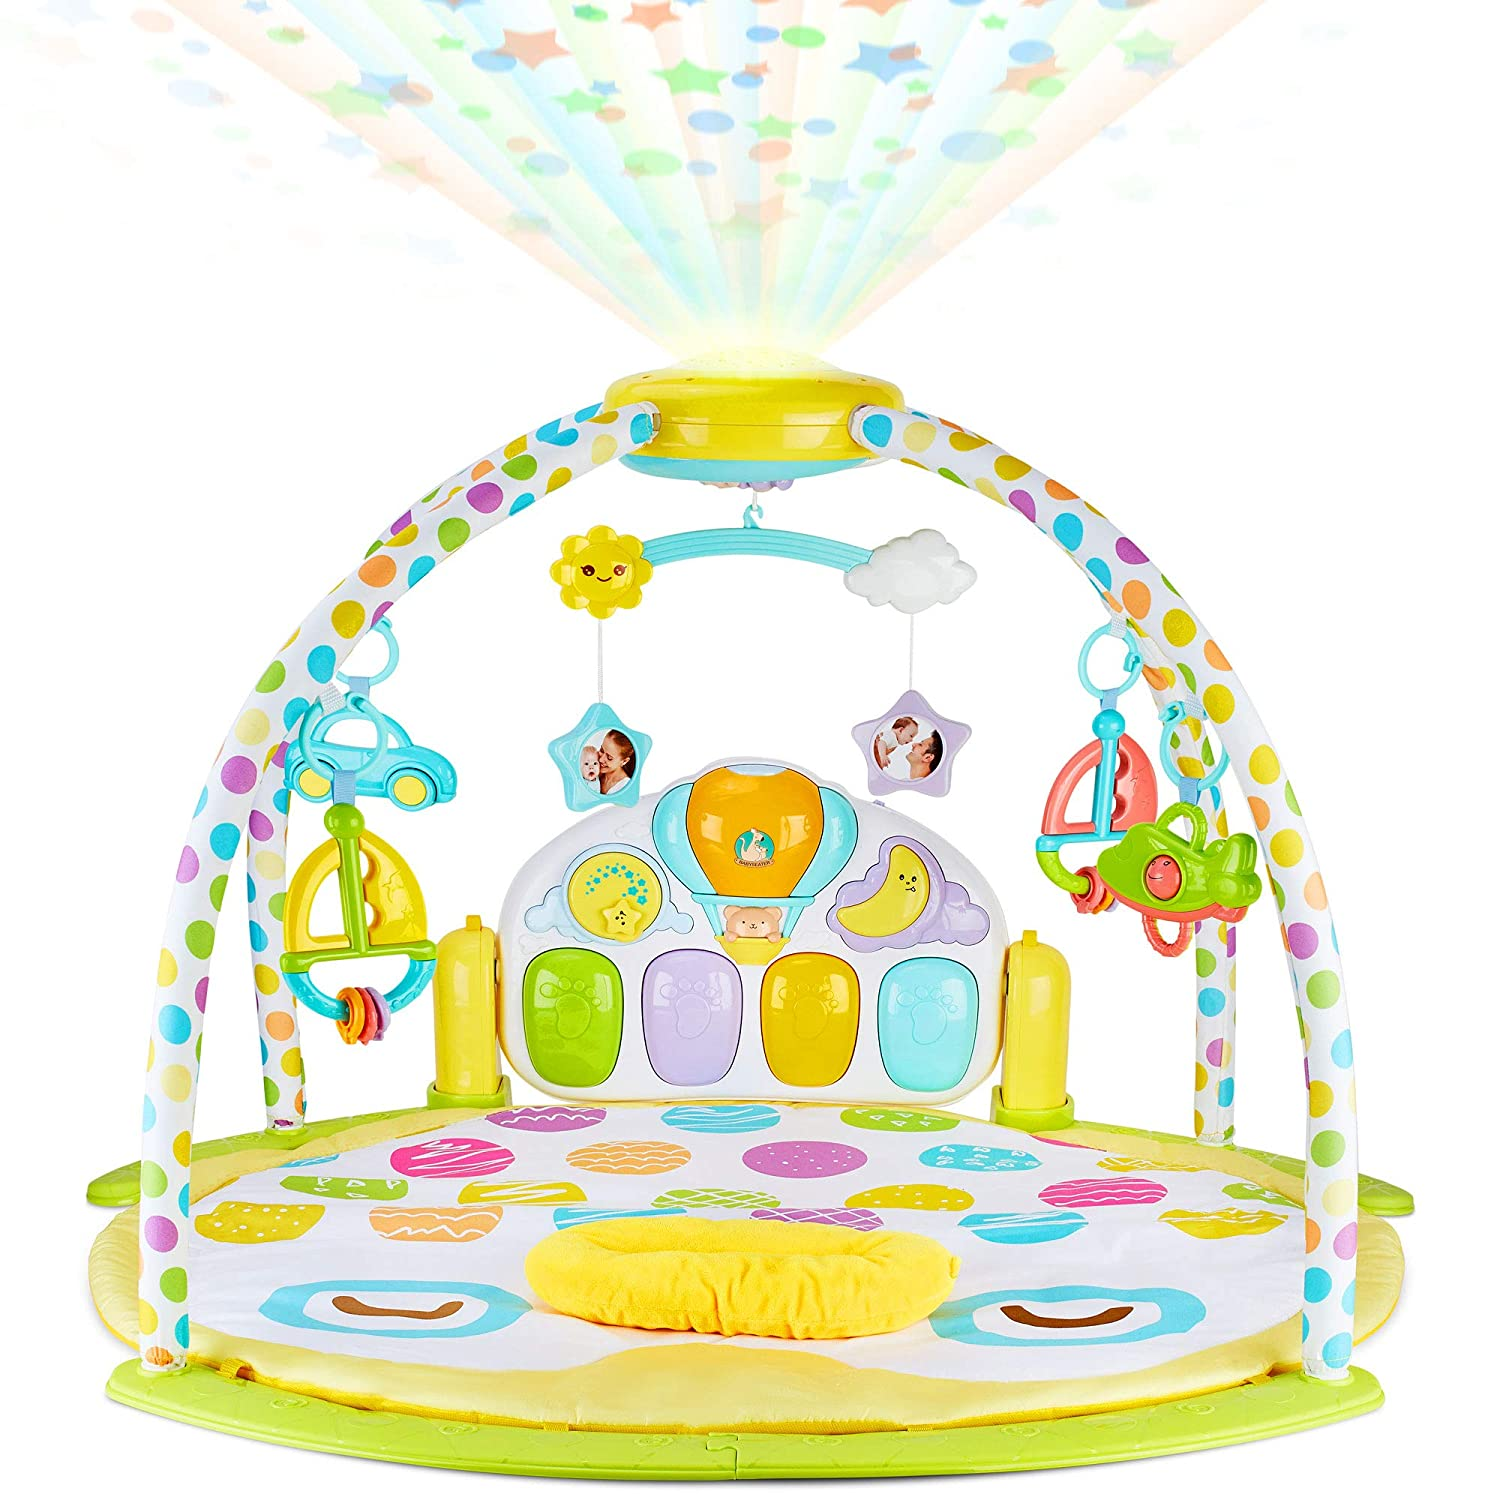 NEW 2019 Baby Gym Kick and Play Piano Activity – 0m+ Large Play & Learn Infant Toys Jungle Gym – Baby Kick Piano Mat with Rotating Star Mobile & Star Projector – Machine Washable Newborn & Toddler Gym